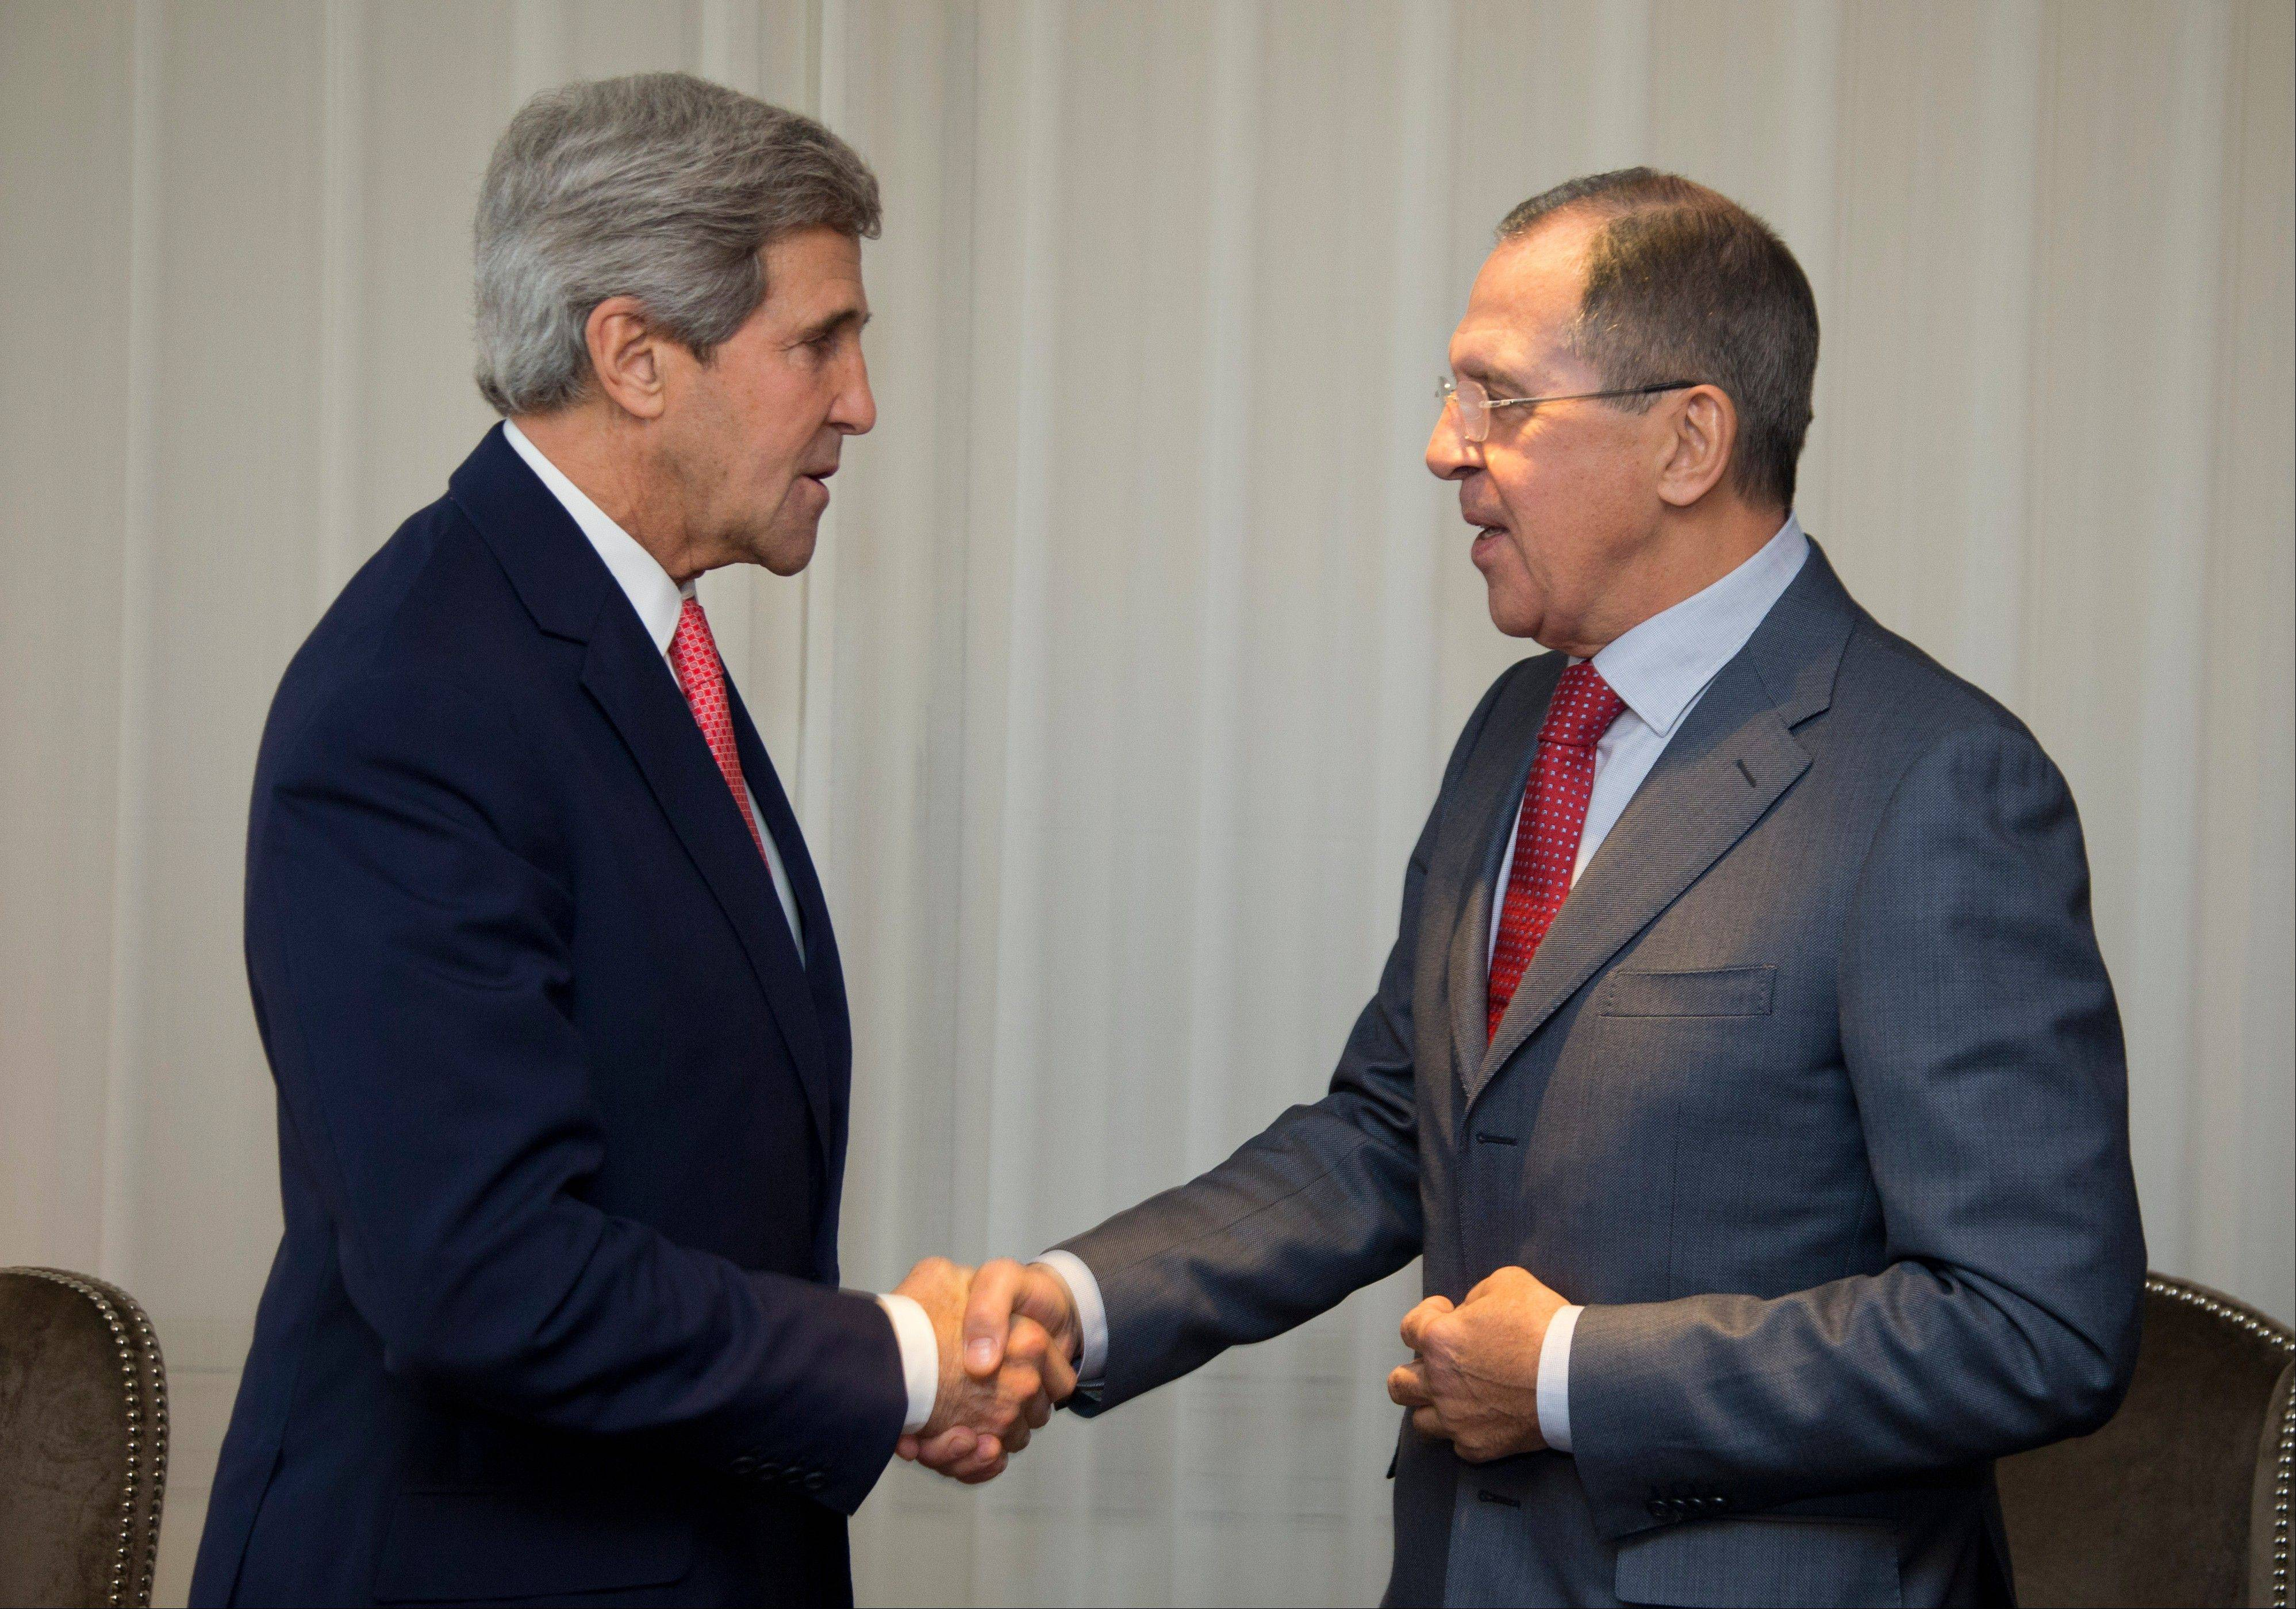 U.S. Secretary of State John Kerry, left and Russia's Foreign Minister Sergei Lavrov shake hands, during a photo opportunity, prior to their meeting Saturday in Geneva, Switzerland.